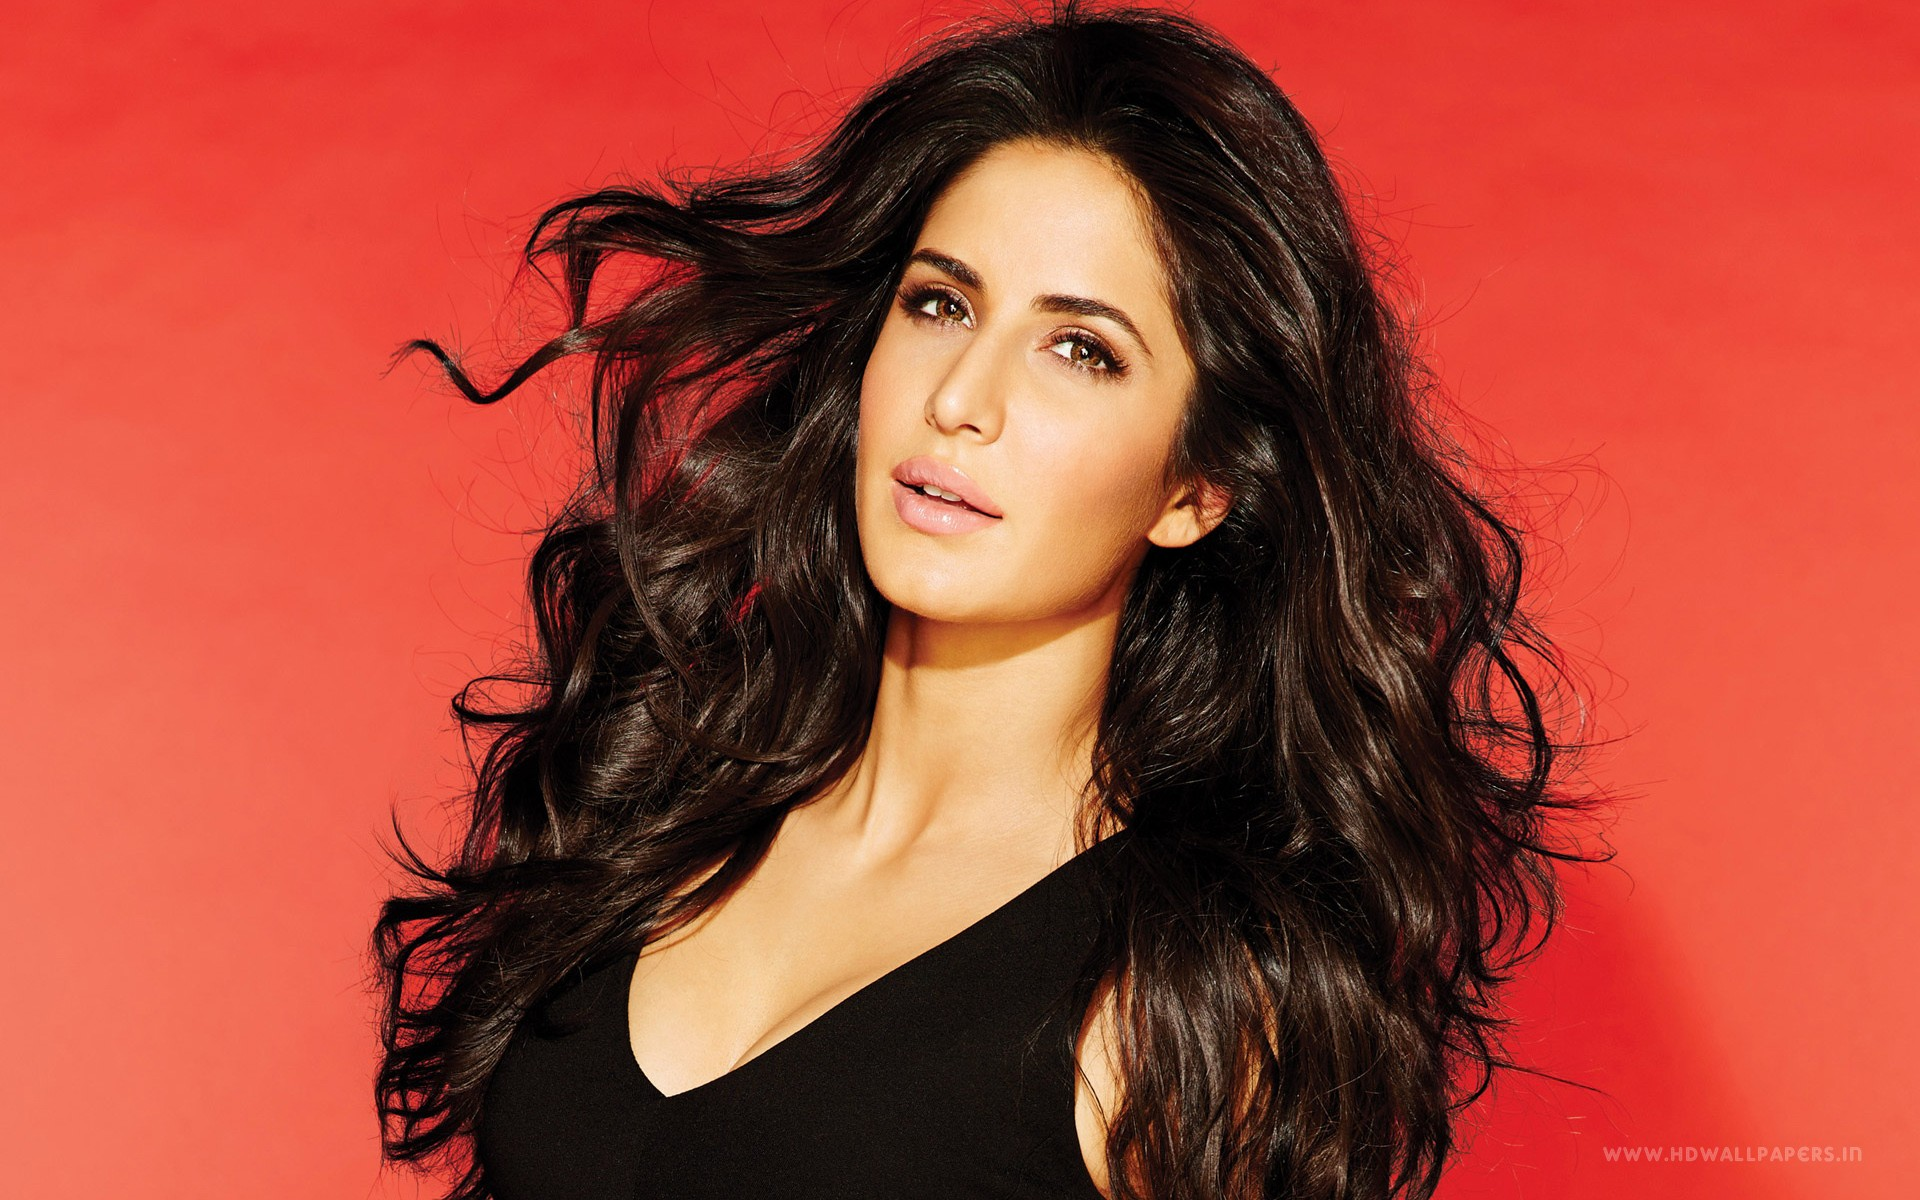 Katrina Kaif Wallpaper Background